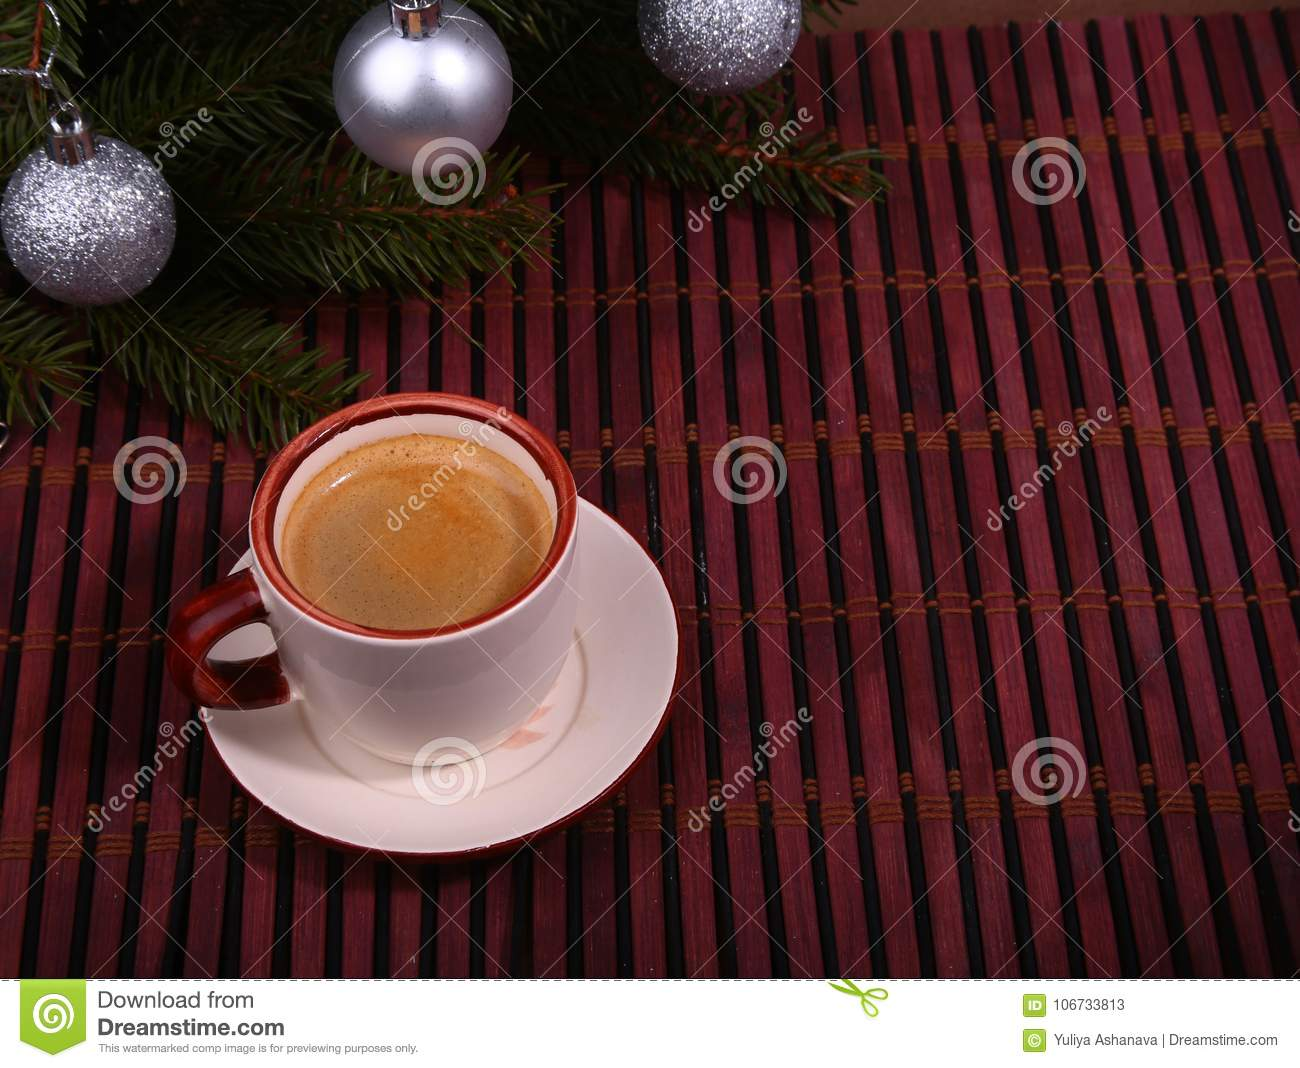 Good Morning Or Have A Nice Day Merry Christmas Cup Of Coffee With